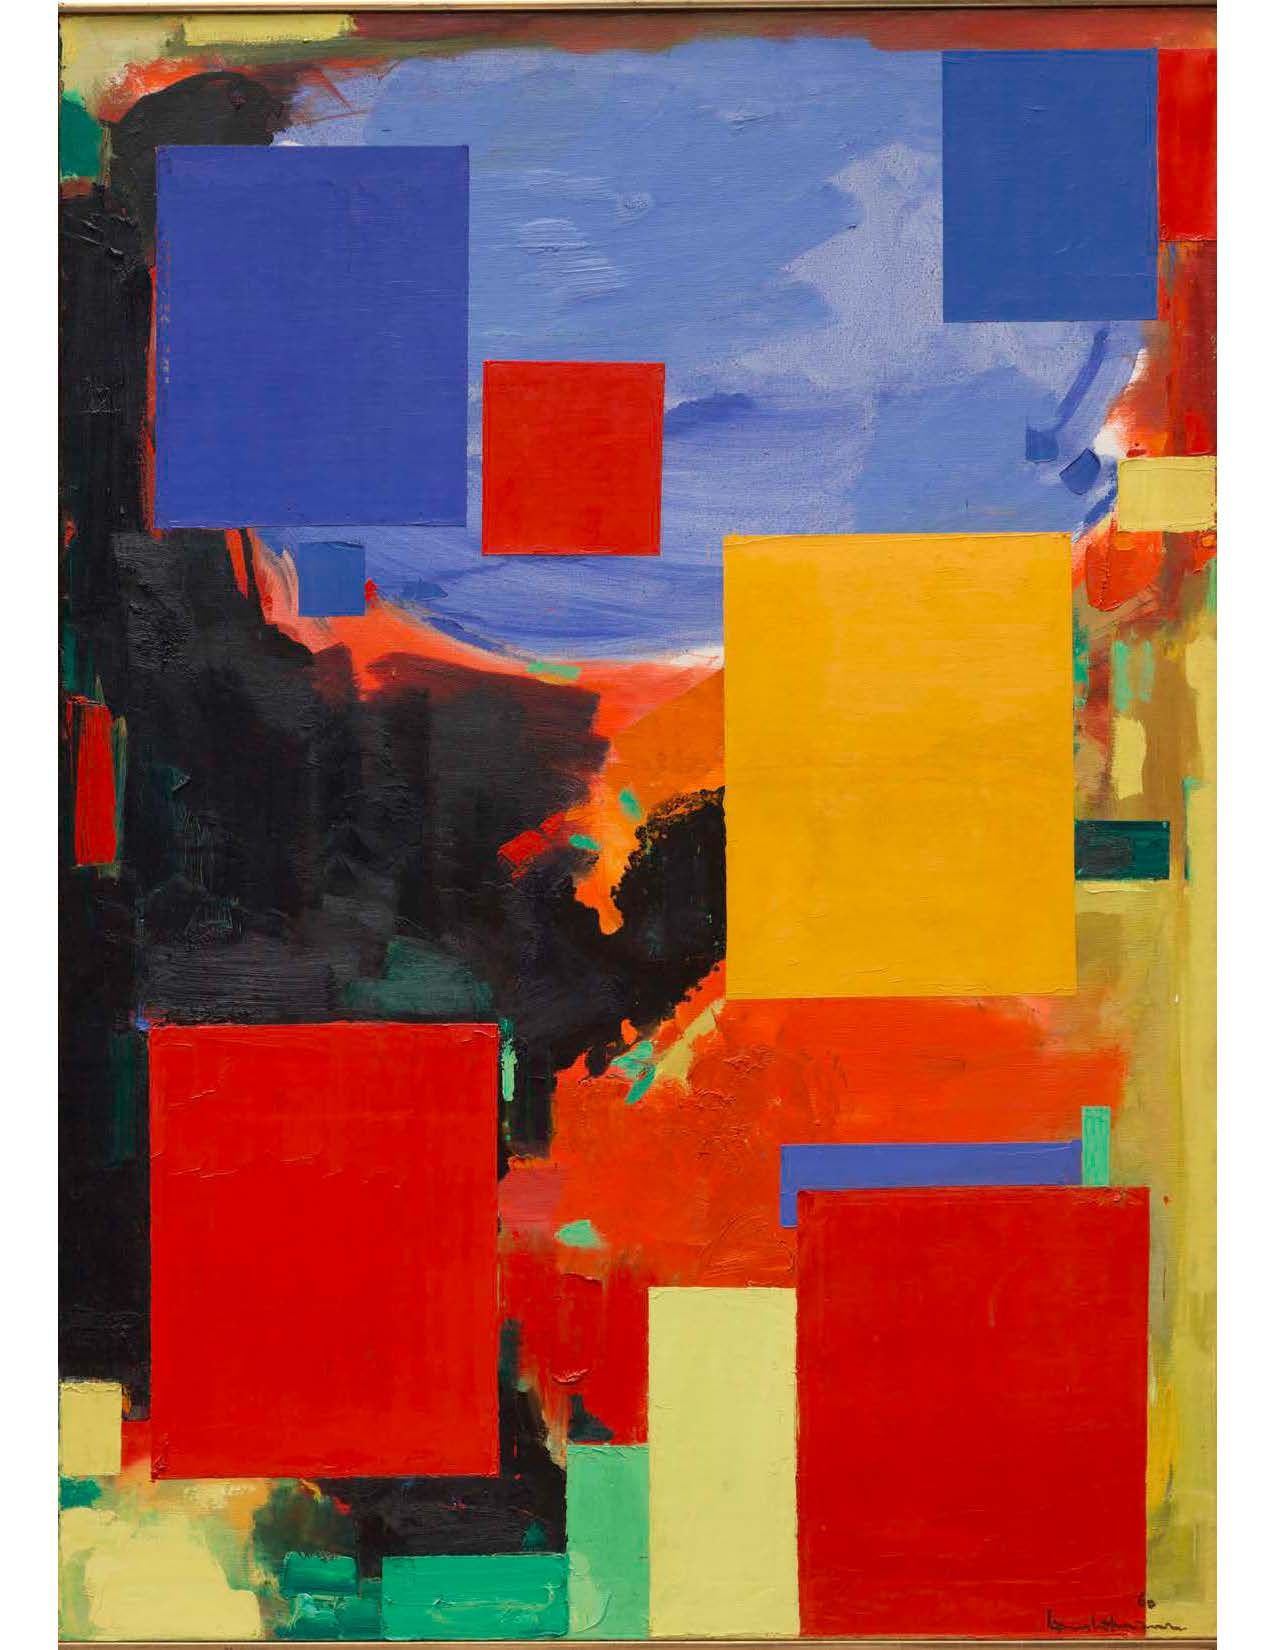 image from Hans Hofmann